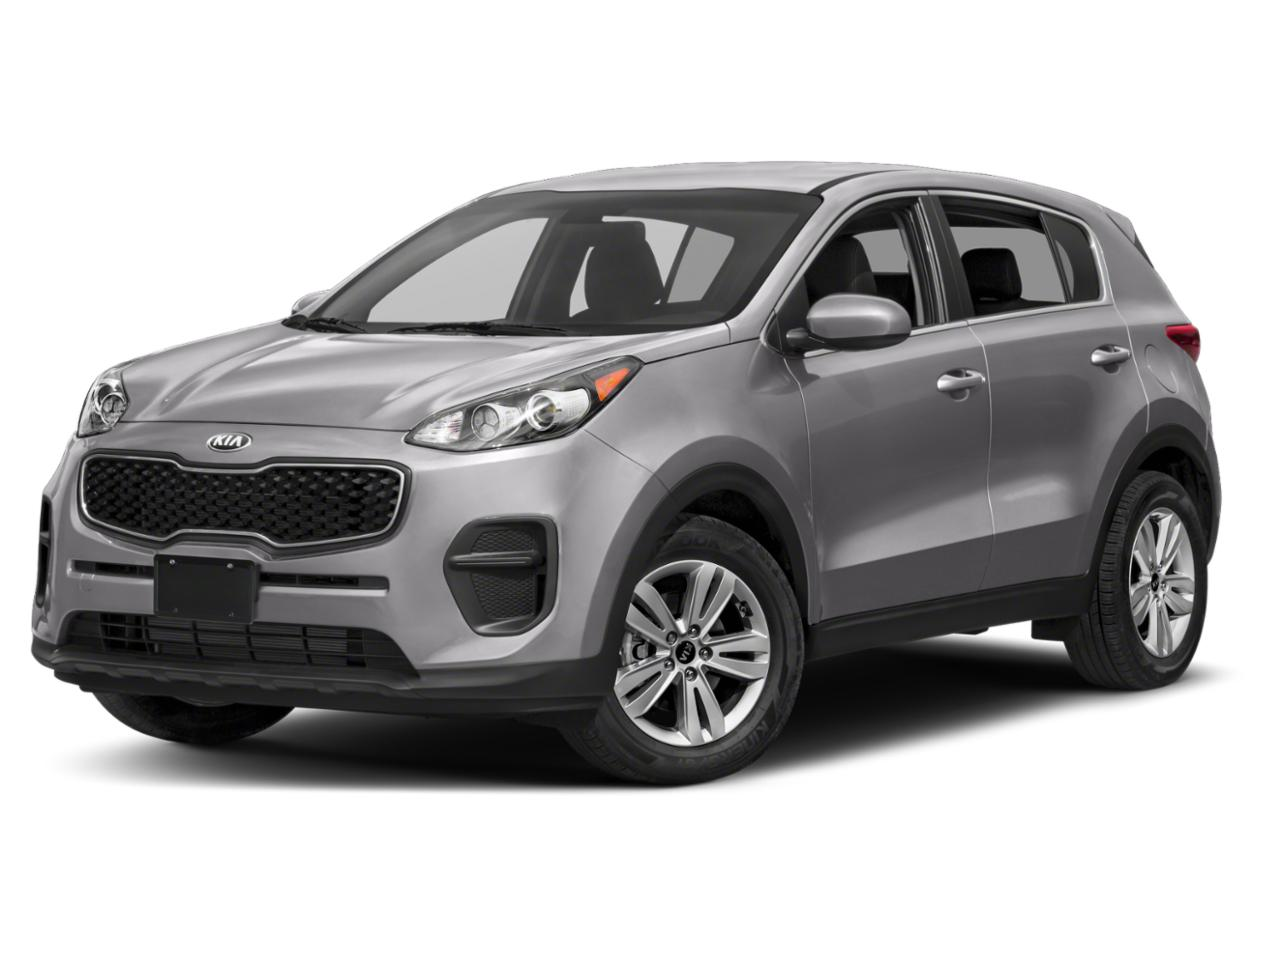 2018 Kia Sportage Vehicle Photo in Mission, TX 78572